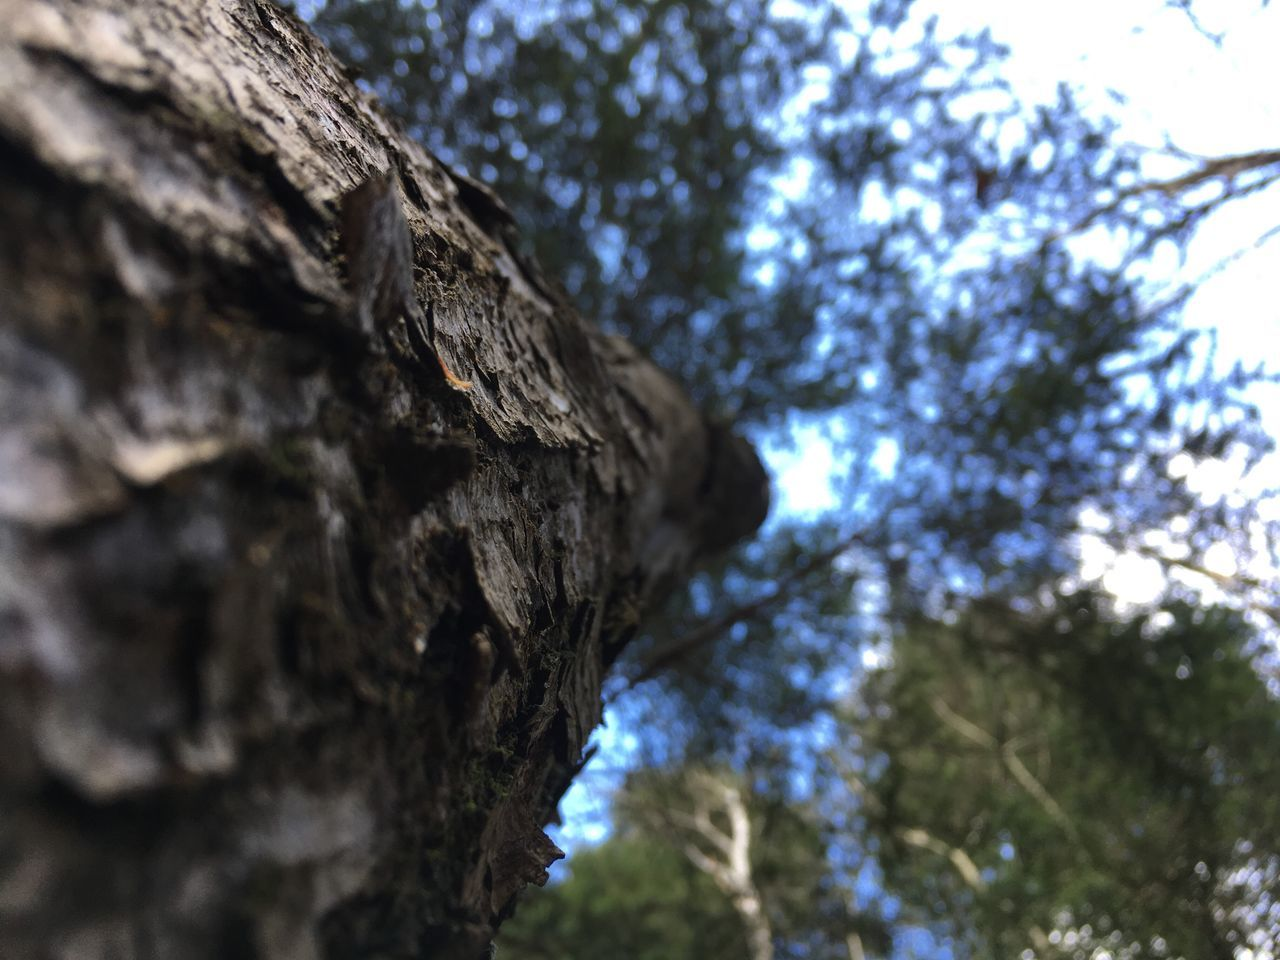 tree, tree trunk, low angle view, textured, nature, day, focus on foreground, no people, outdoors, growth, sky, close-up, beauty in nature